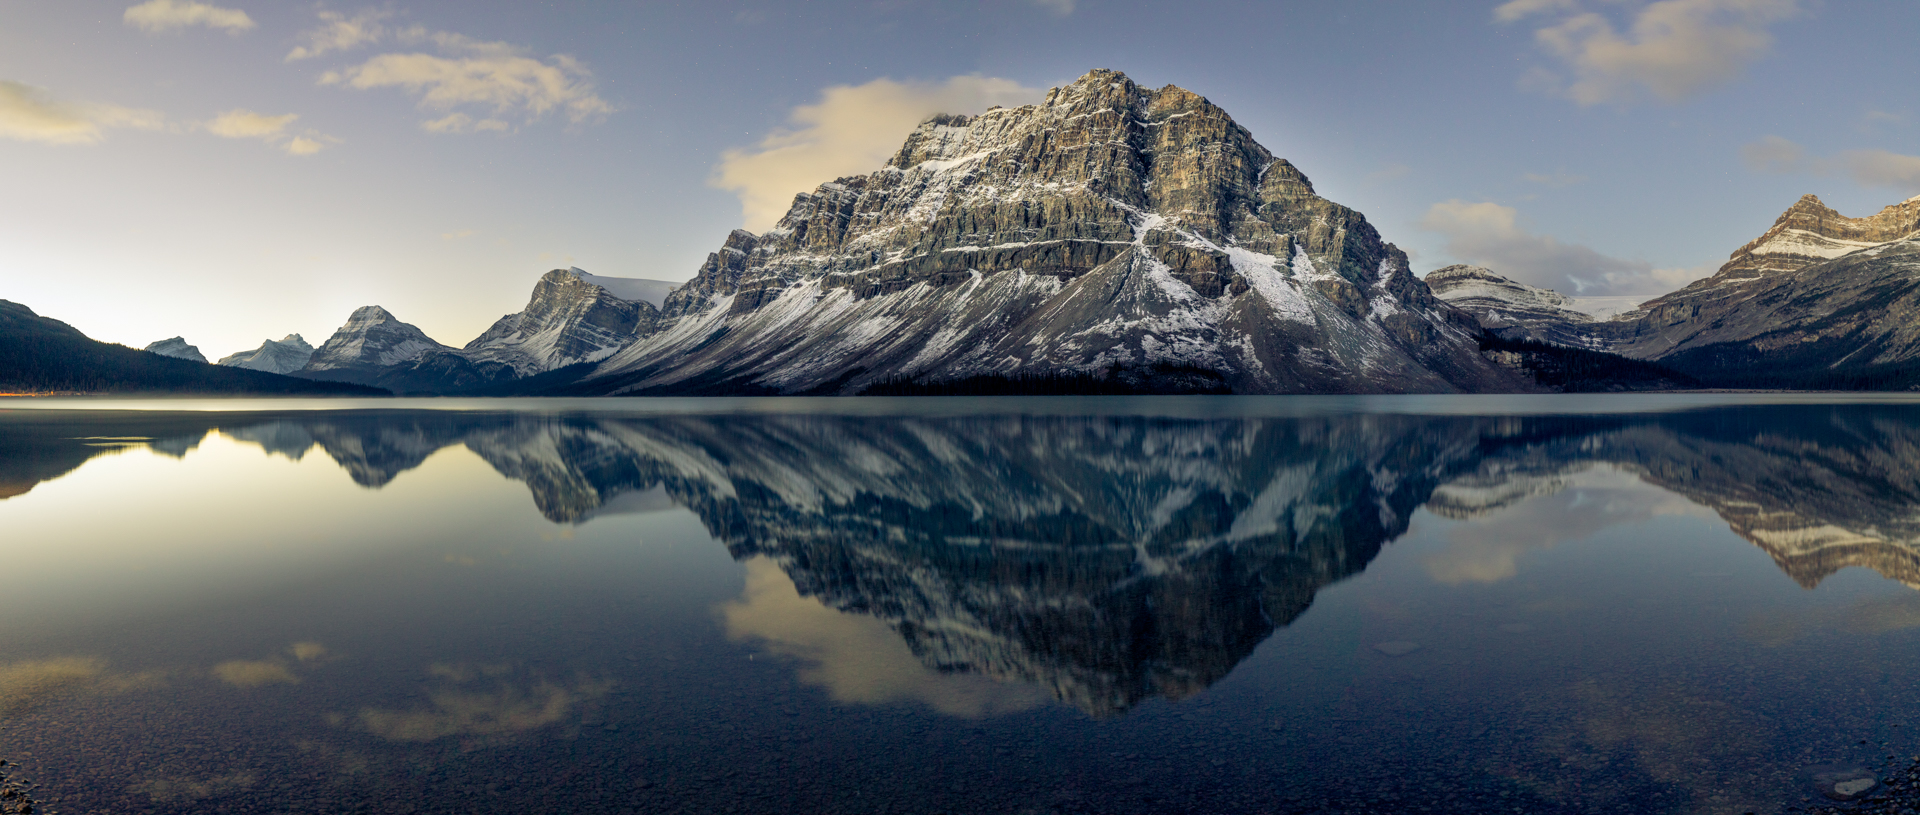 Pictorial-Colour_Bow-Lake_David-Rowlands.jpg